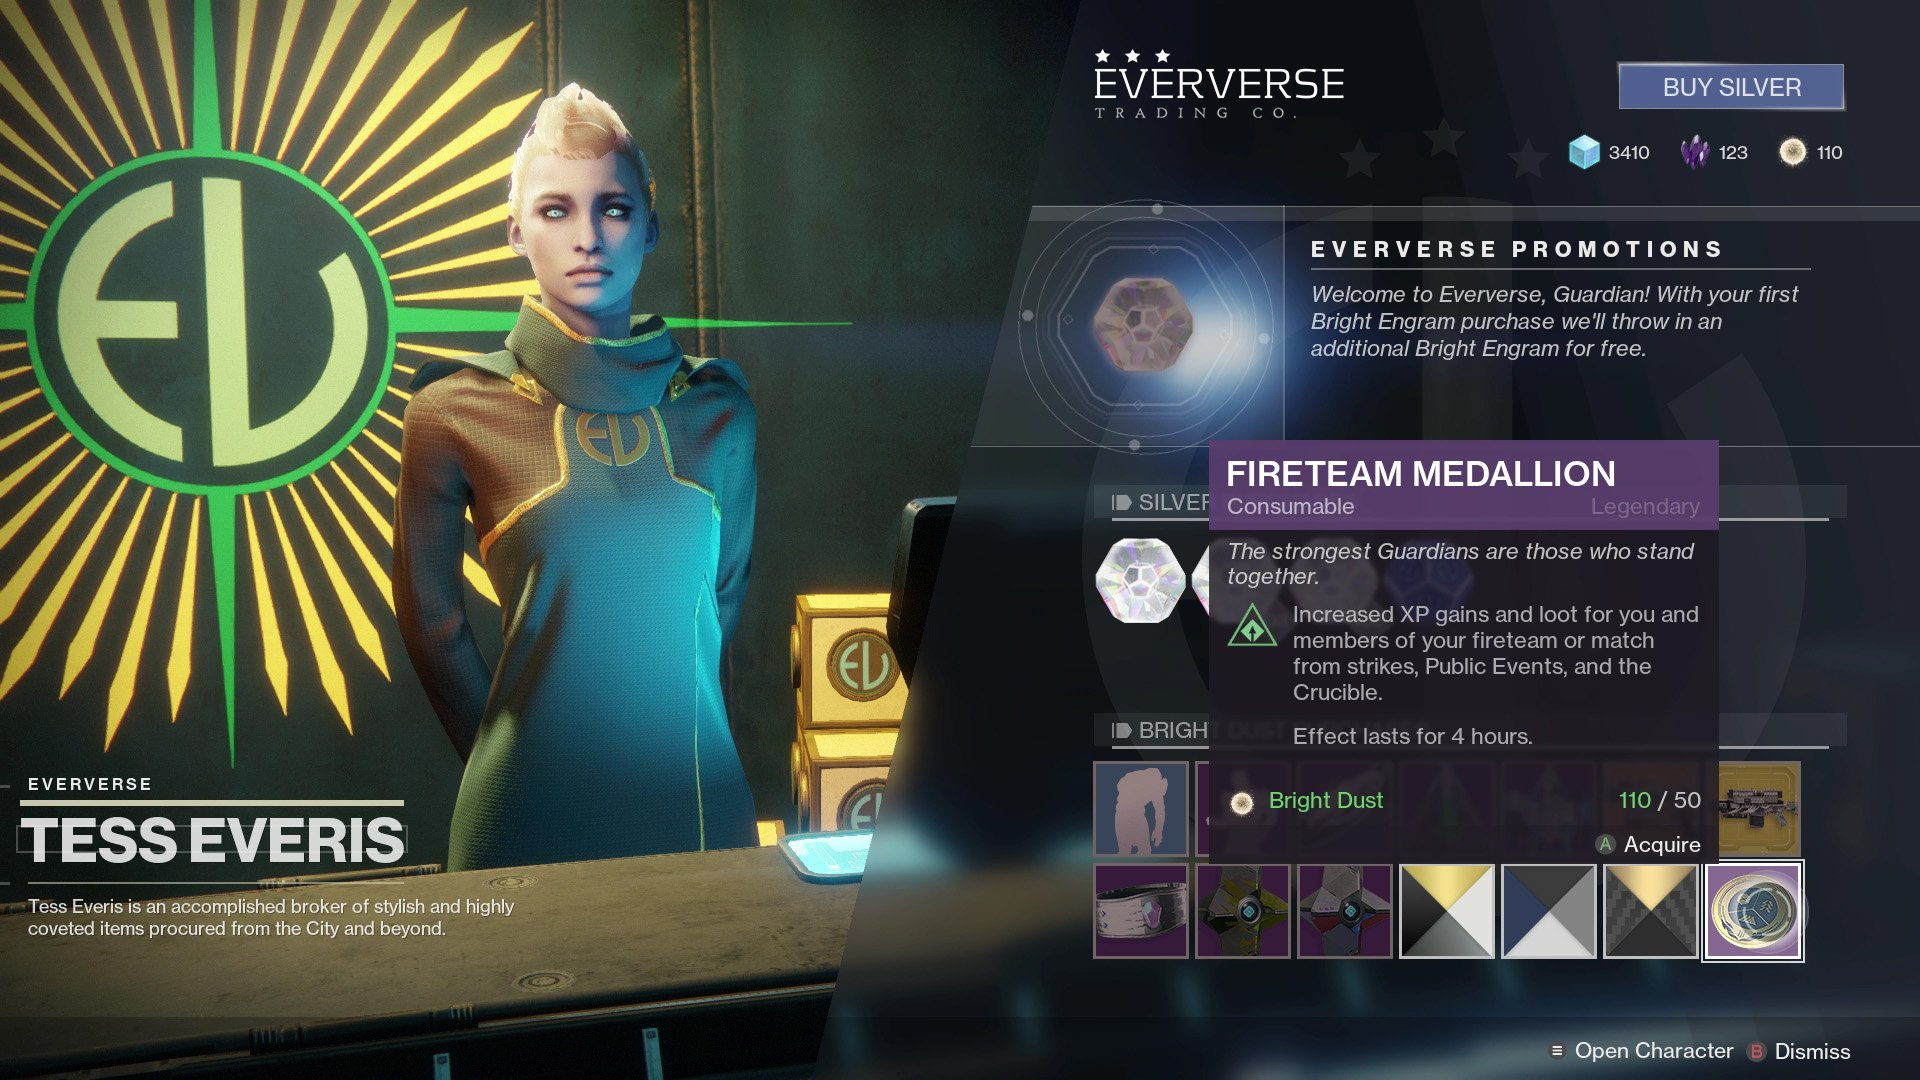 Fireteam Medallions increase the amount of XP and loot you receive, the latter of which can be dismantled into Glimmer.